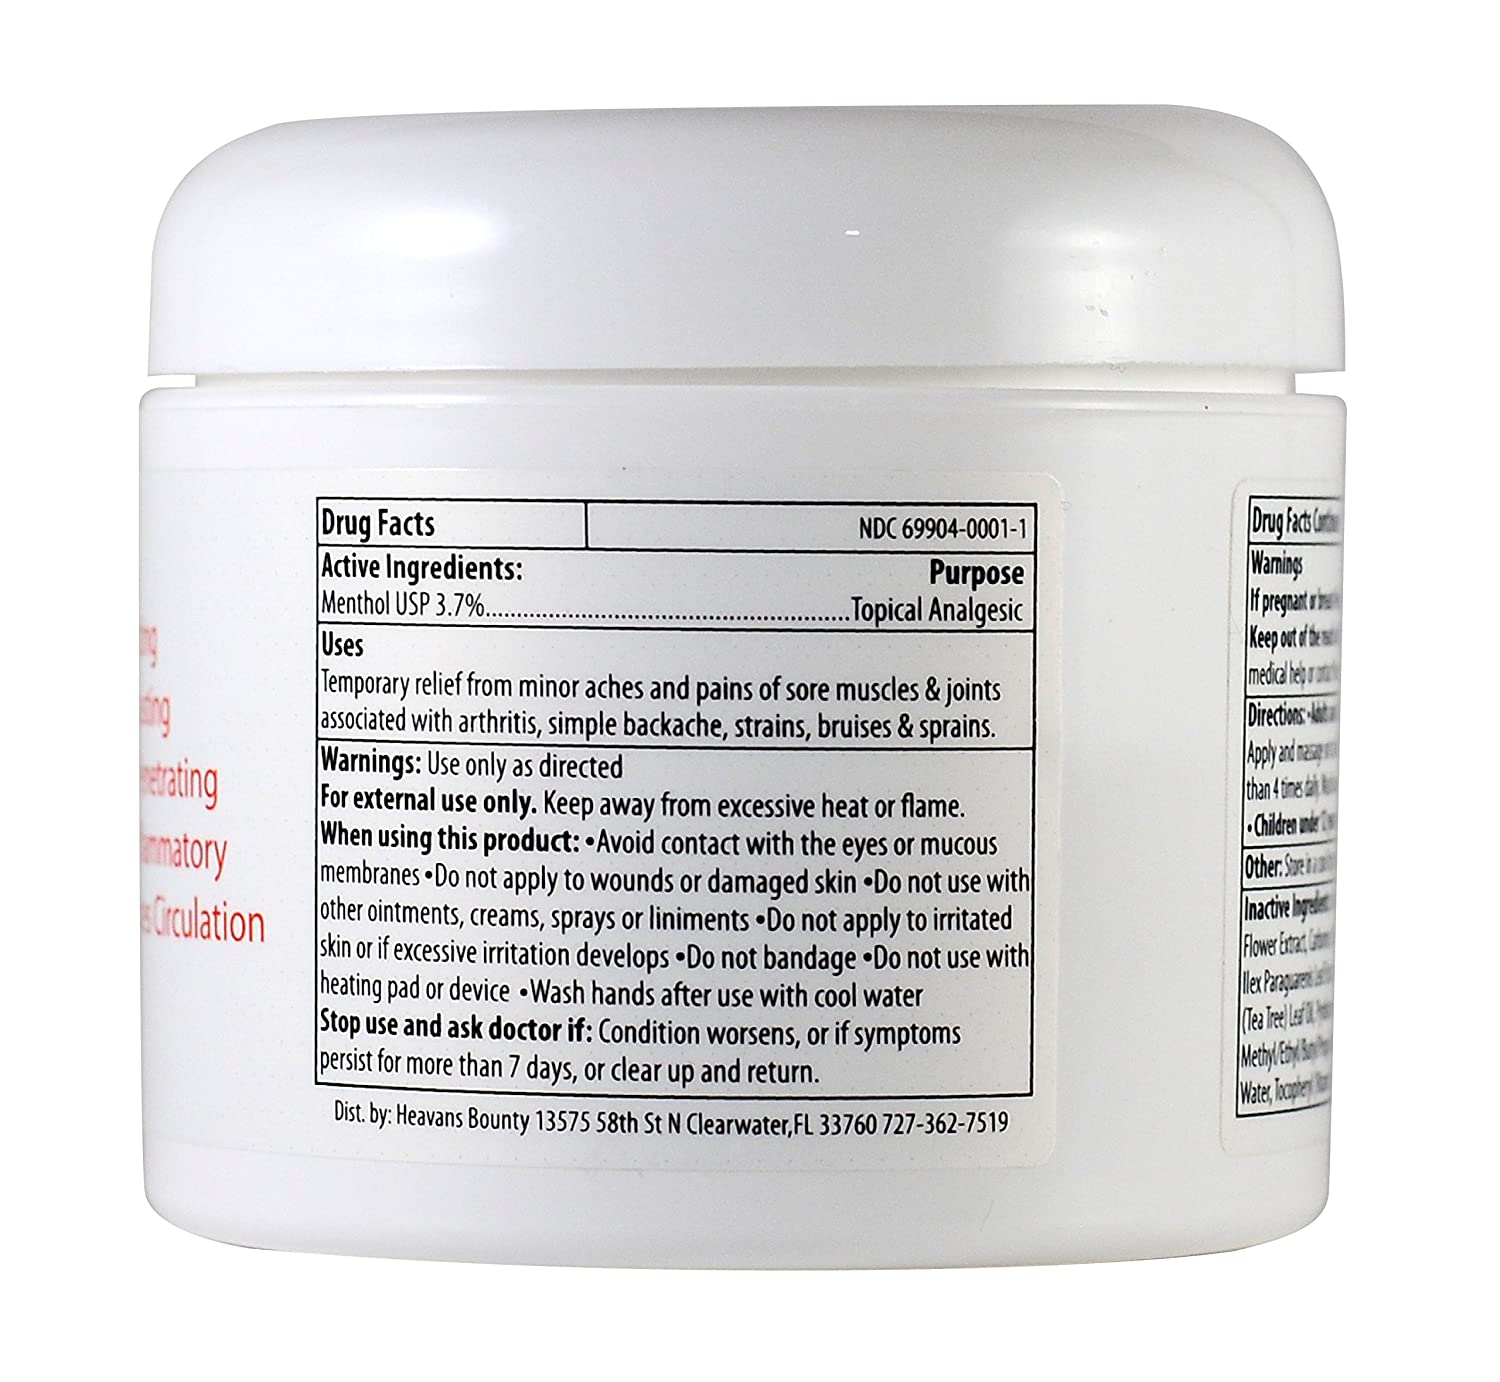 Amazon.com: STAT Pain Relief Cream - [3 Oz] USA Made with Arnica, Menthol, MSM, Aloe, Tea Tree Oil and Ilex - Cools Inflammation, Relaxes Sore Muscles and ...